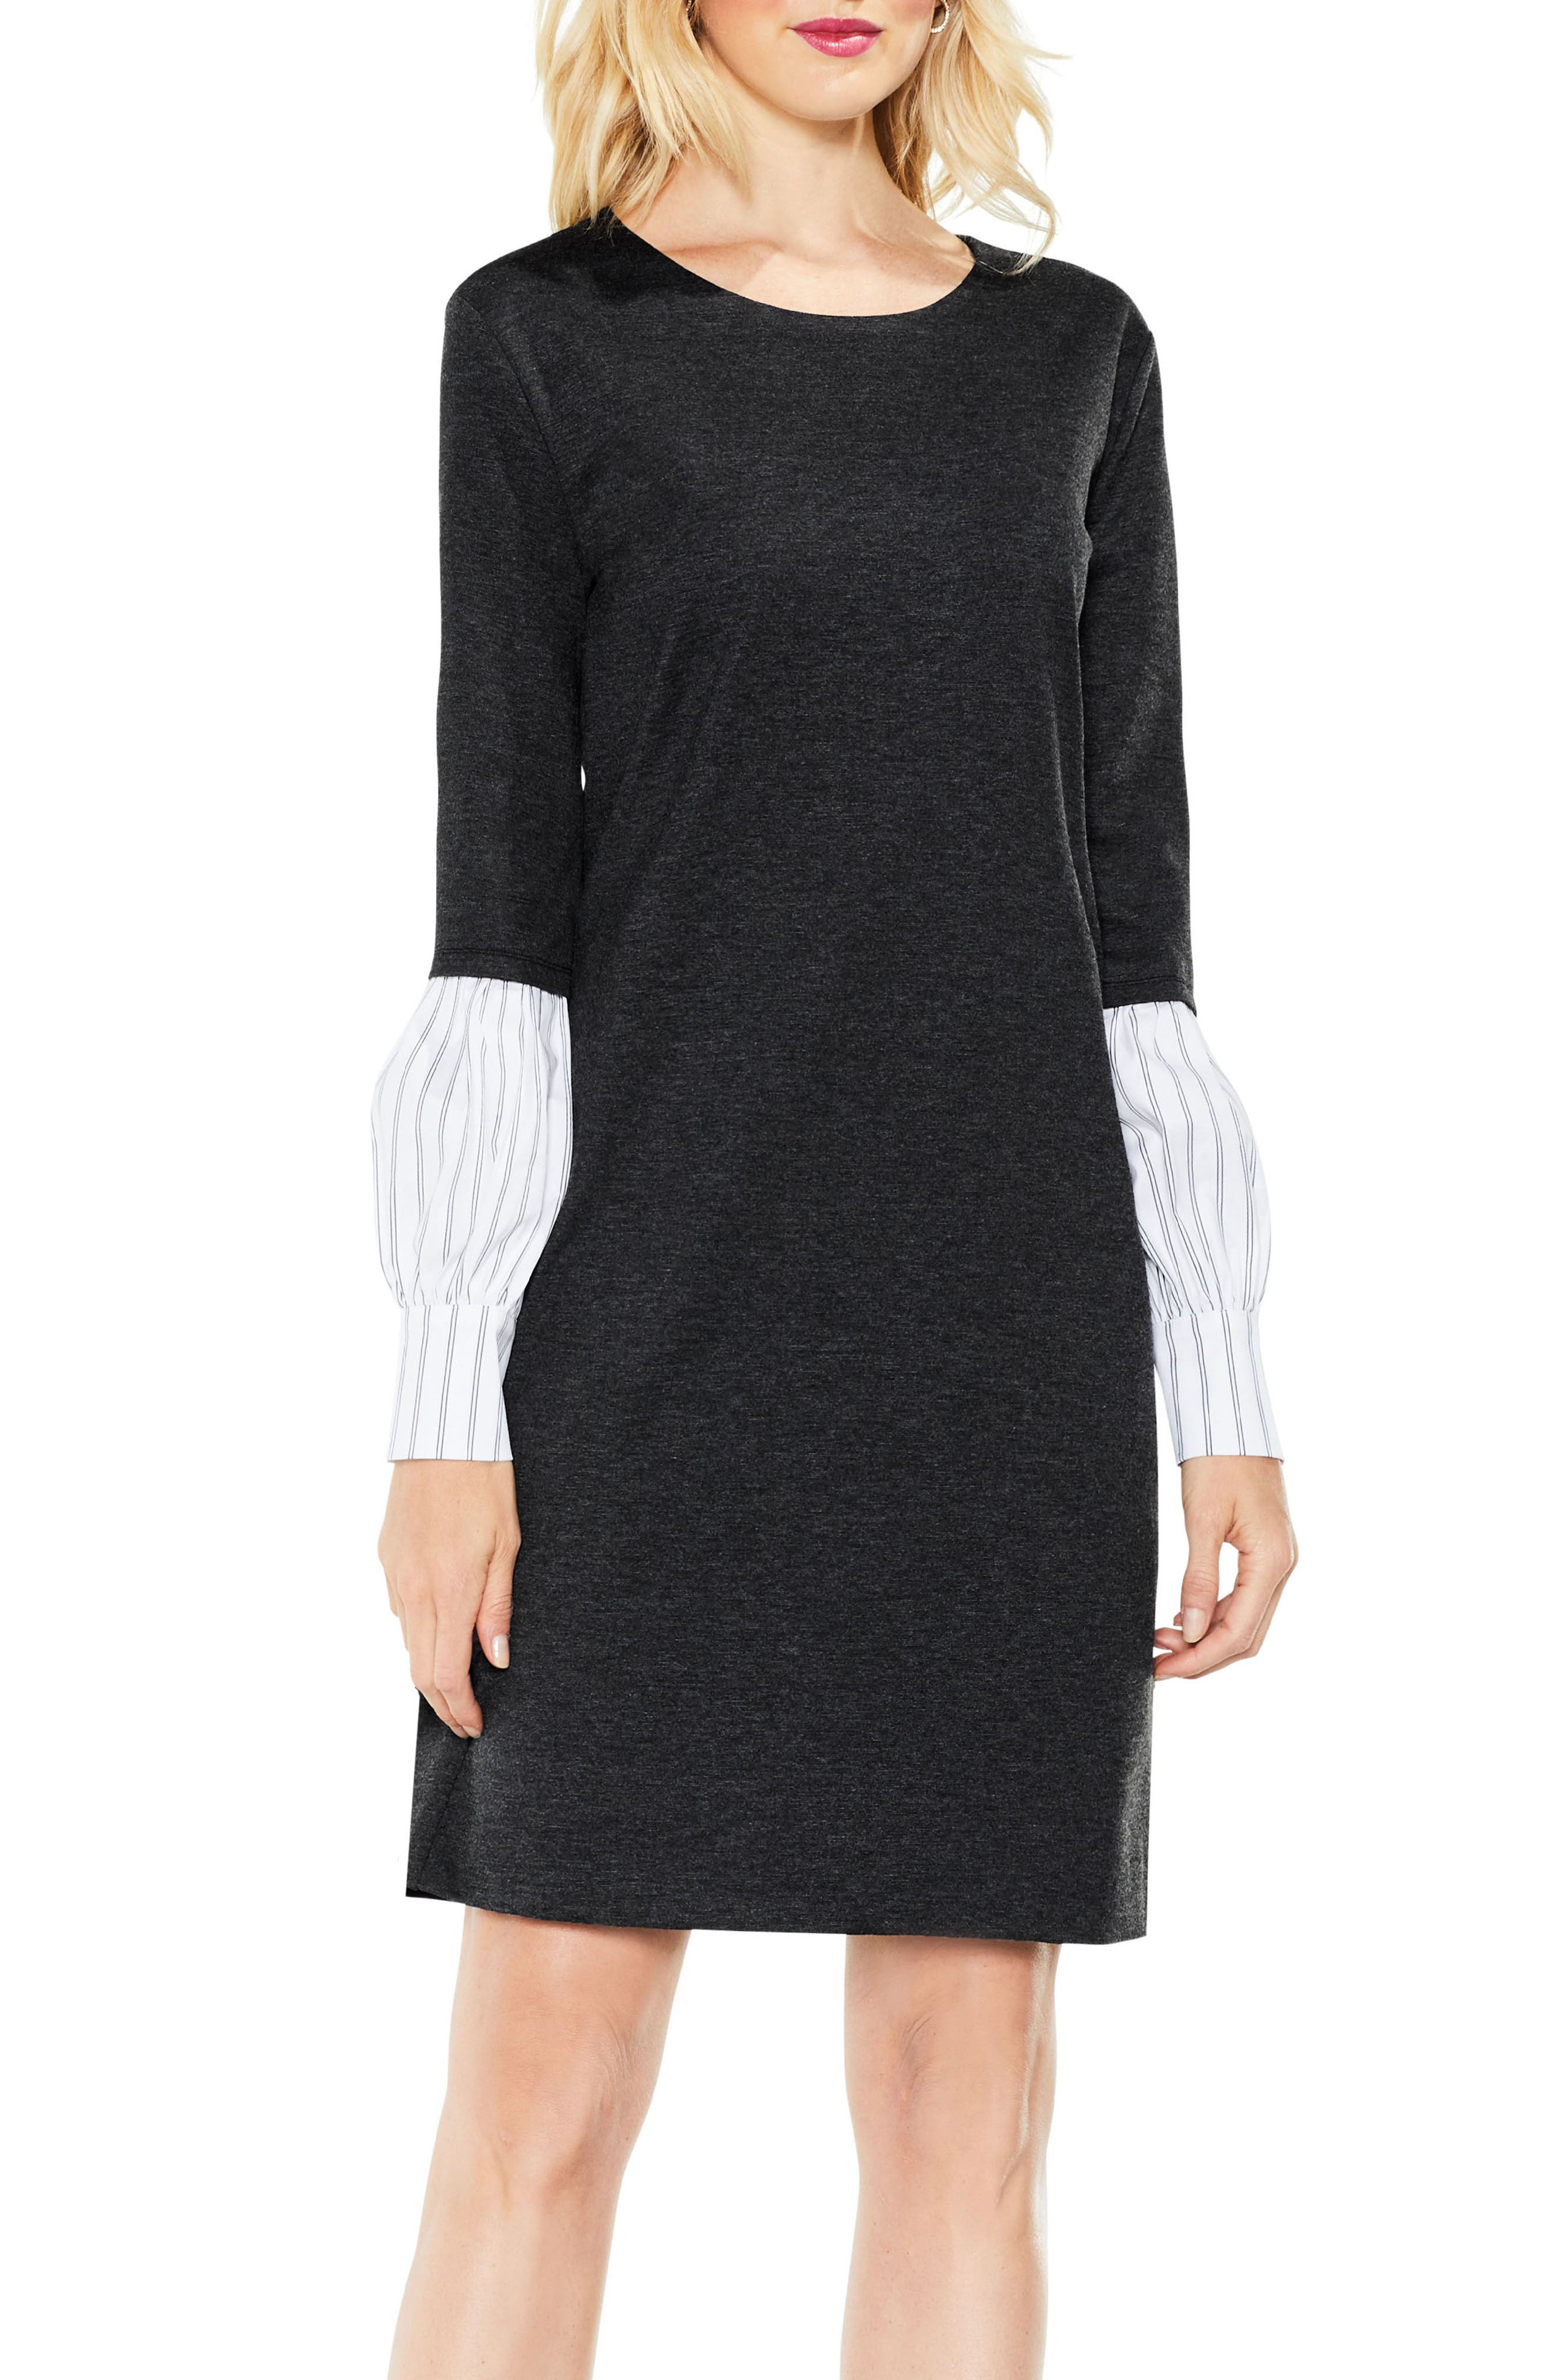 Main Image - Vince Camuto Bubble Sleeve Mix Media Dress